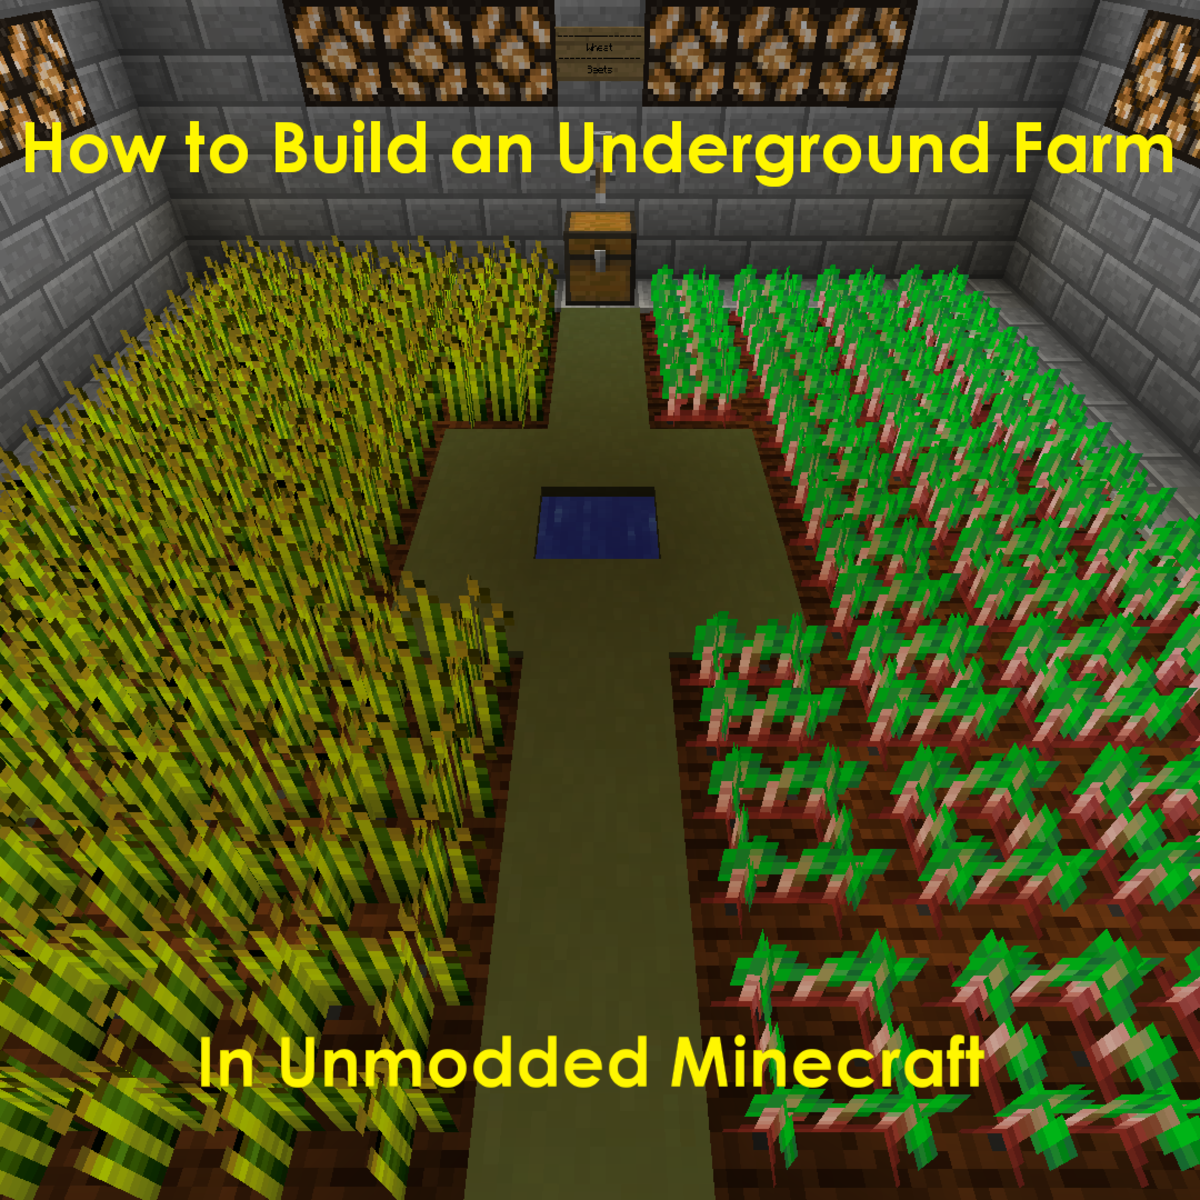 How To Build An Underground Farm In Minecraft Levelskip Video Games